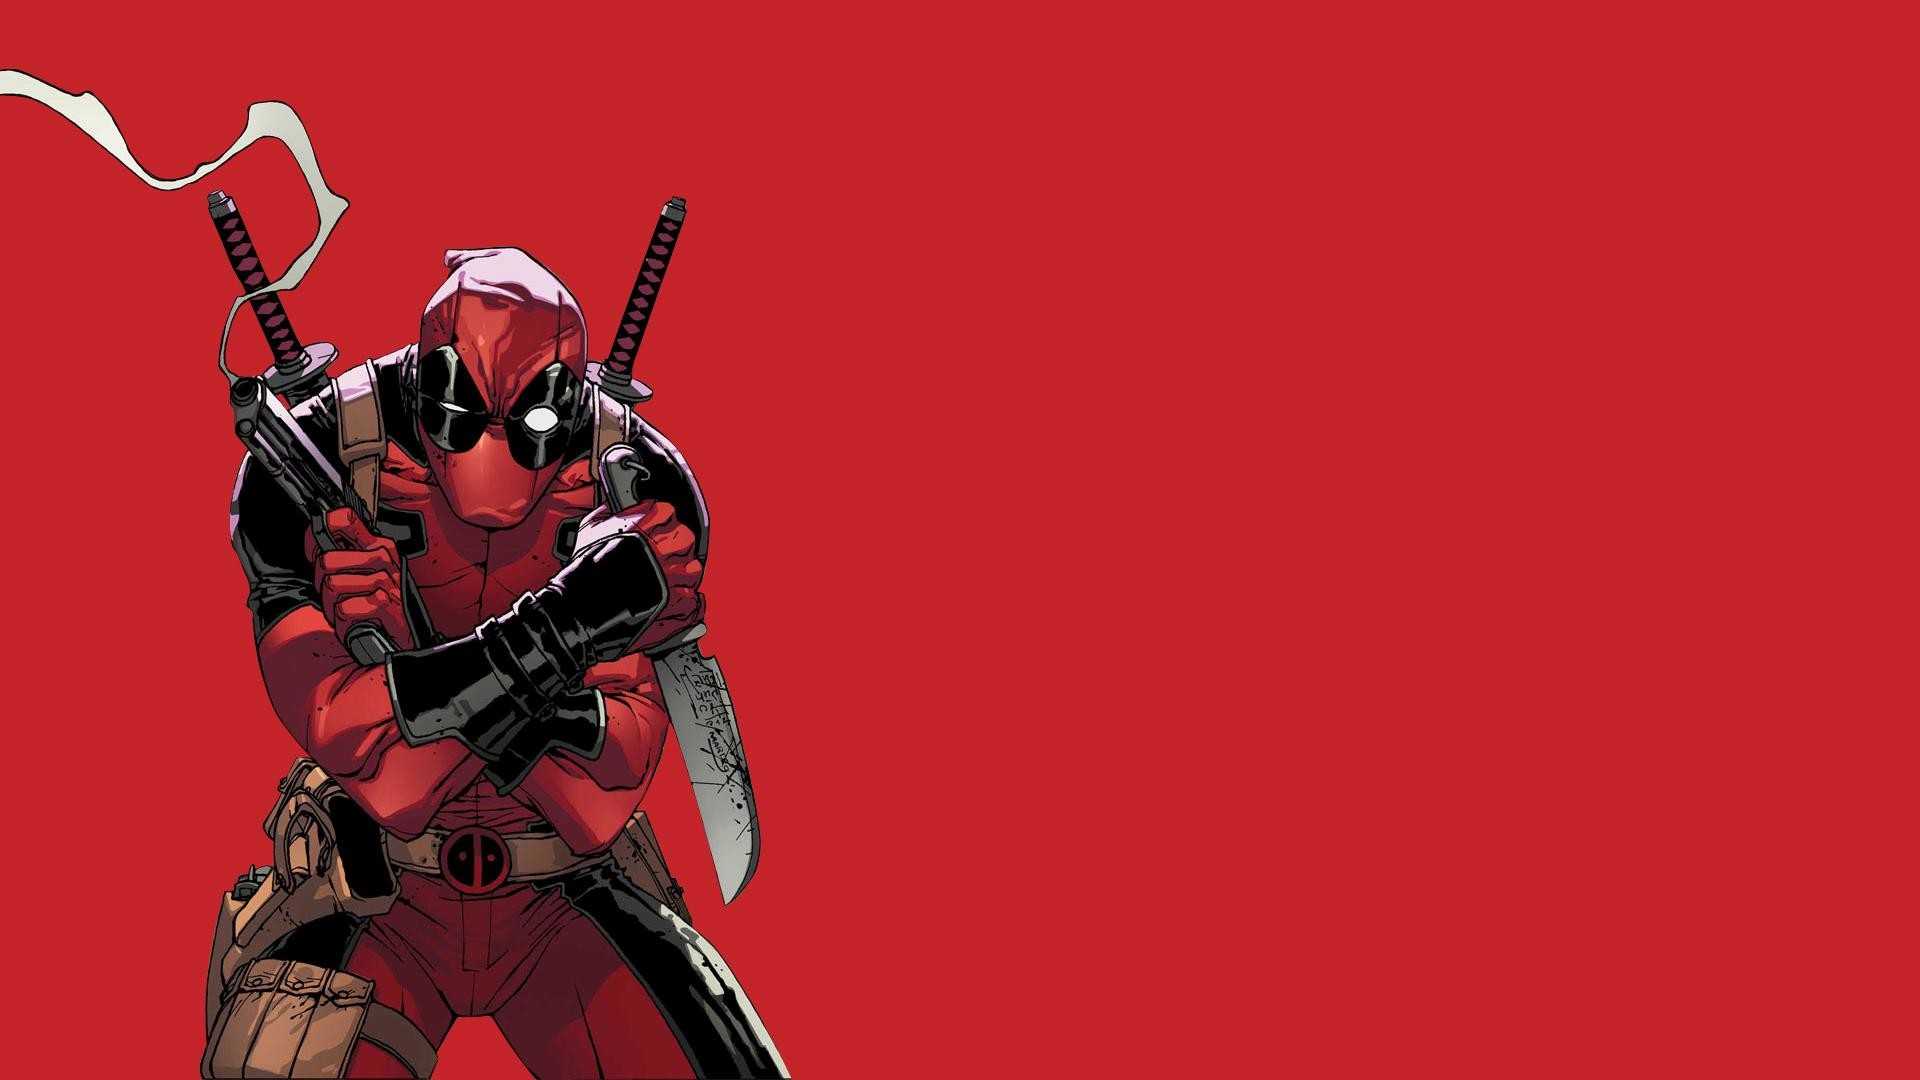 Deadpool Iphone Wallpaper Hd 71 Images